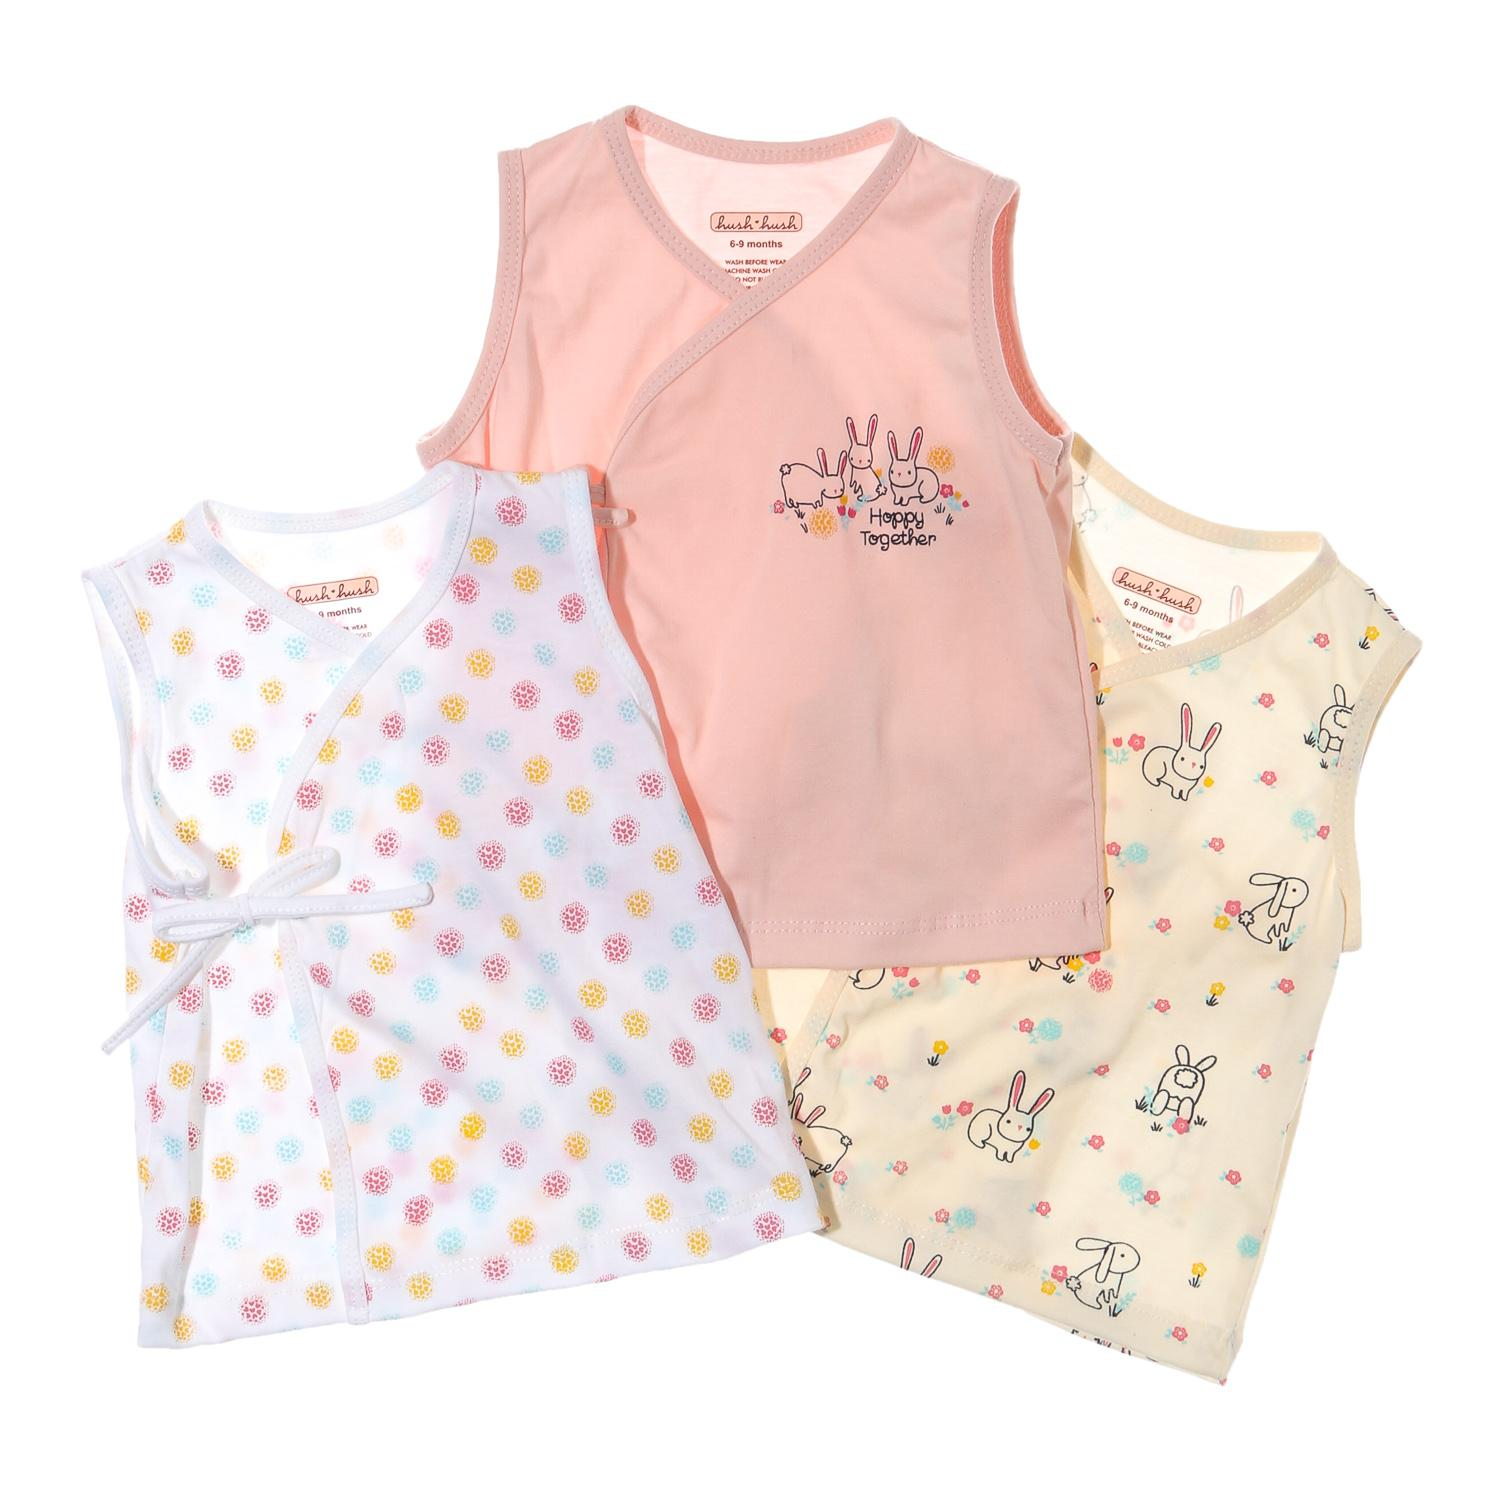 ab6aa9e1841f Onesies for Girls for sale - Body Suits for Girls online brands ...